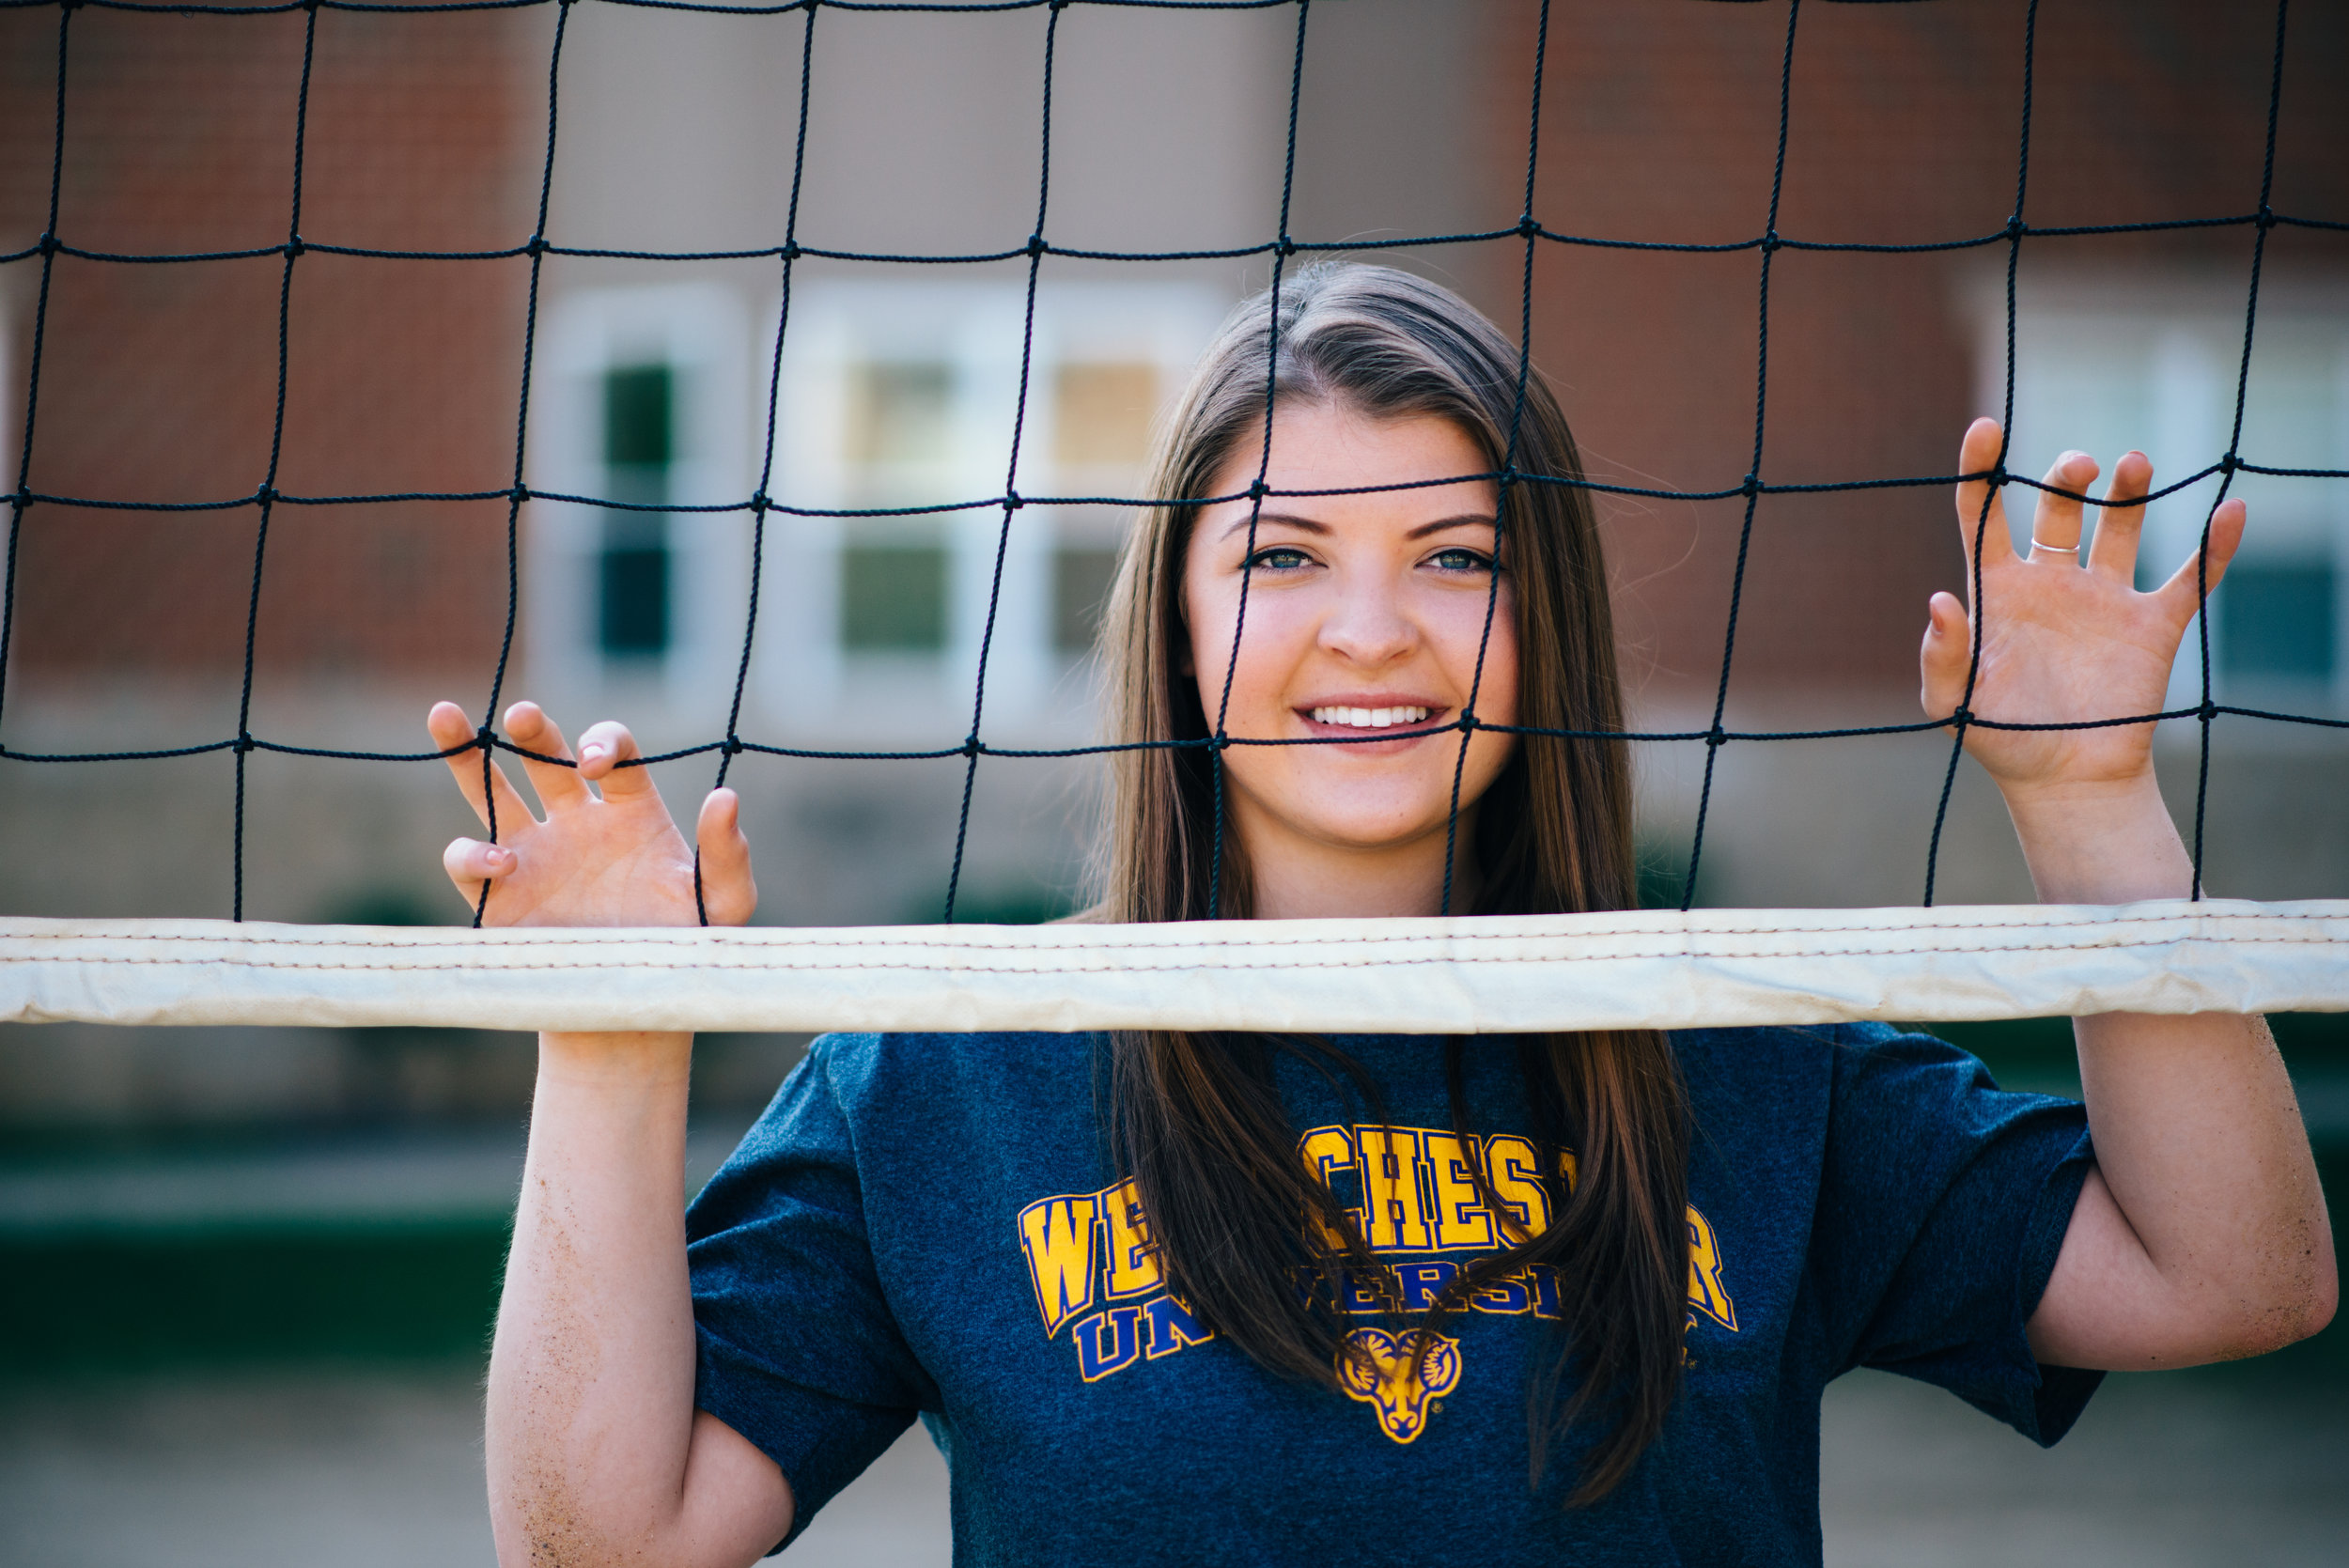 high school senior model behind volleyball net with Westchester University college shirt